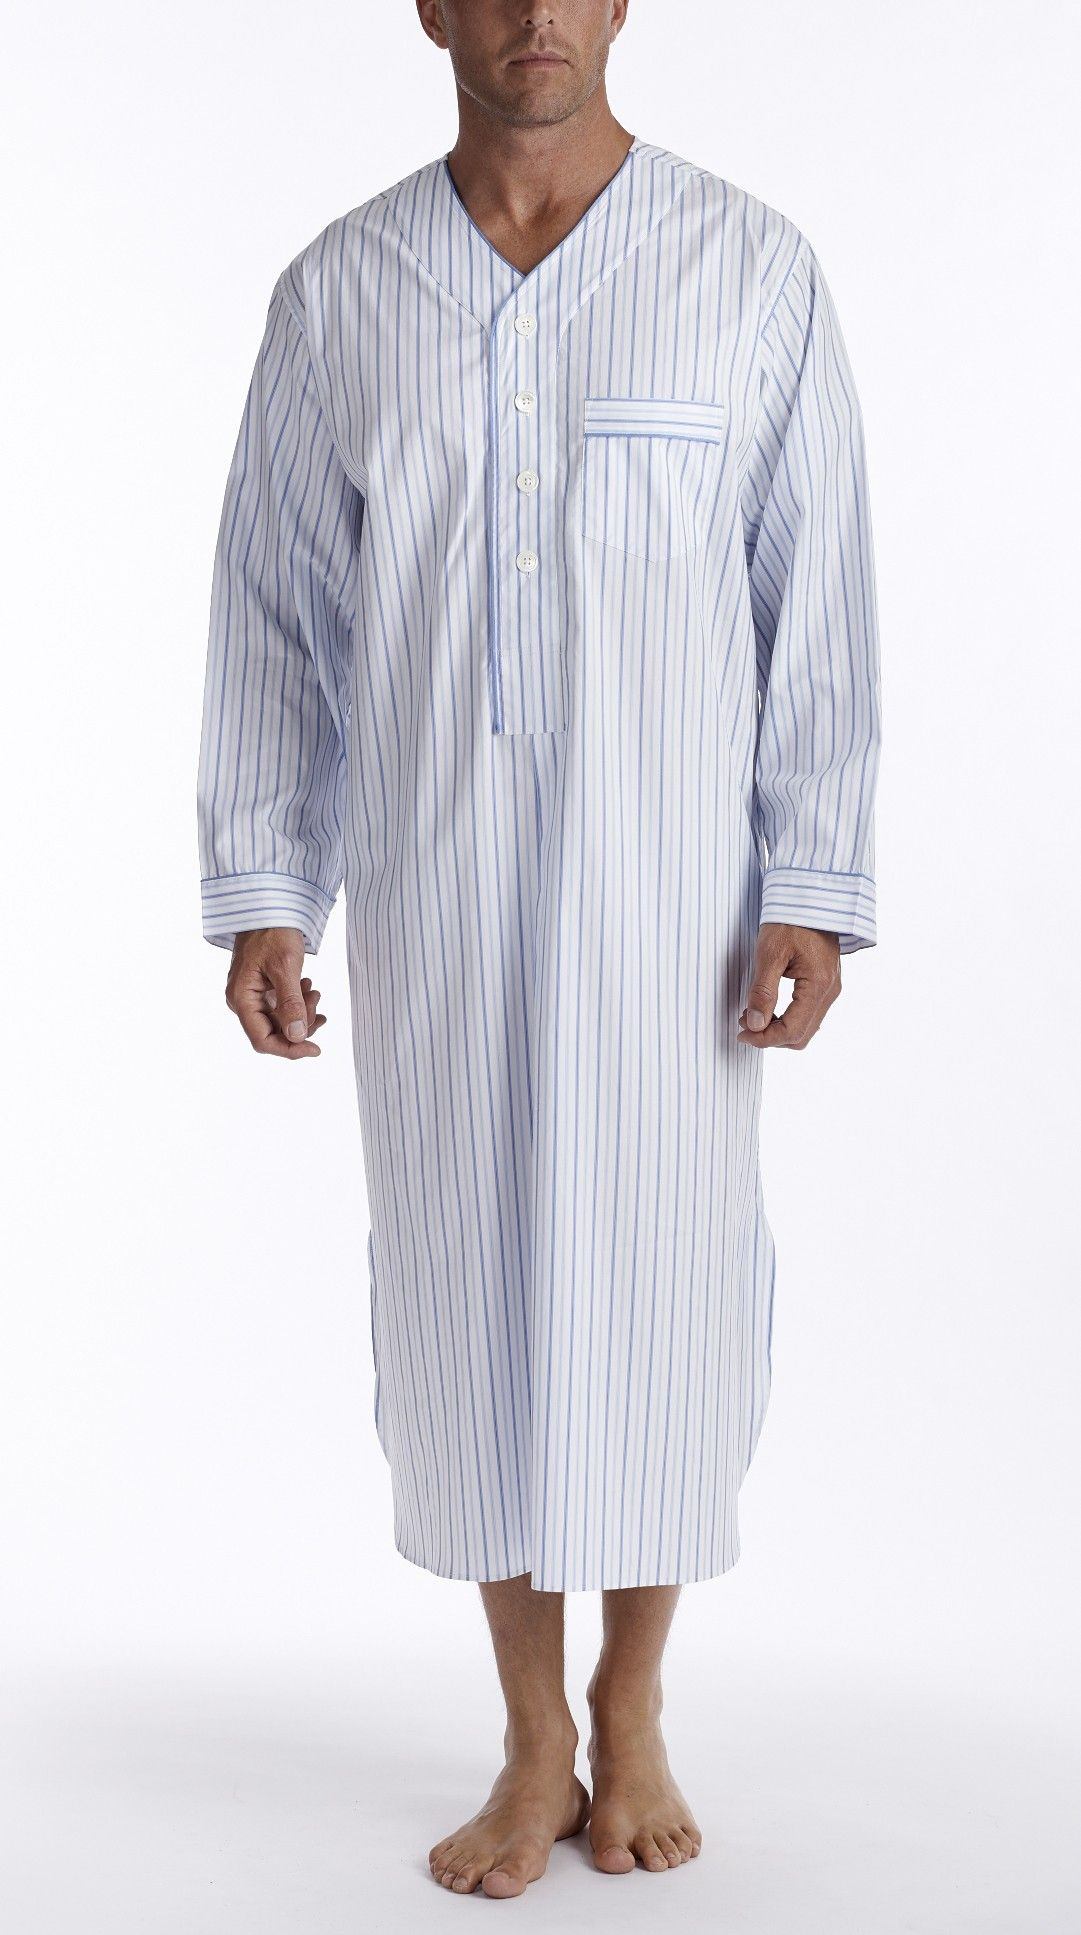 Men 39 s sleepwear nightshirts mid ocean men 39 s nightshirt Long cotton sleep shirts